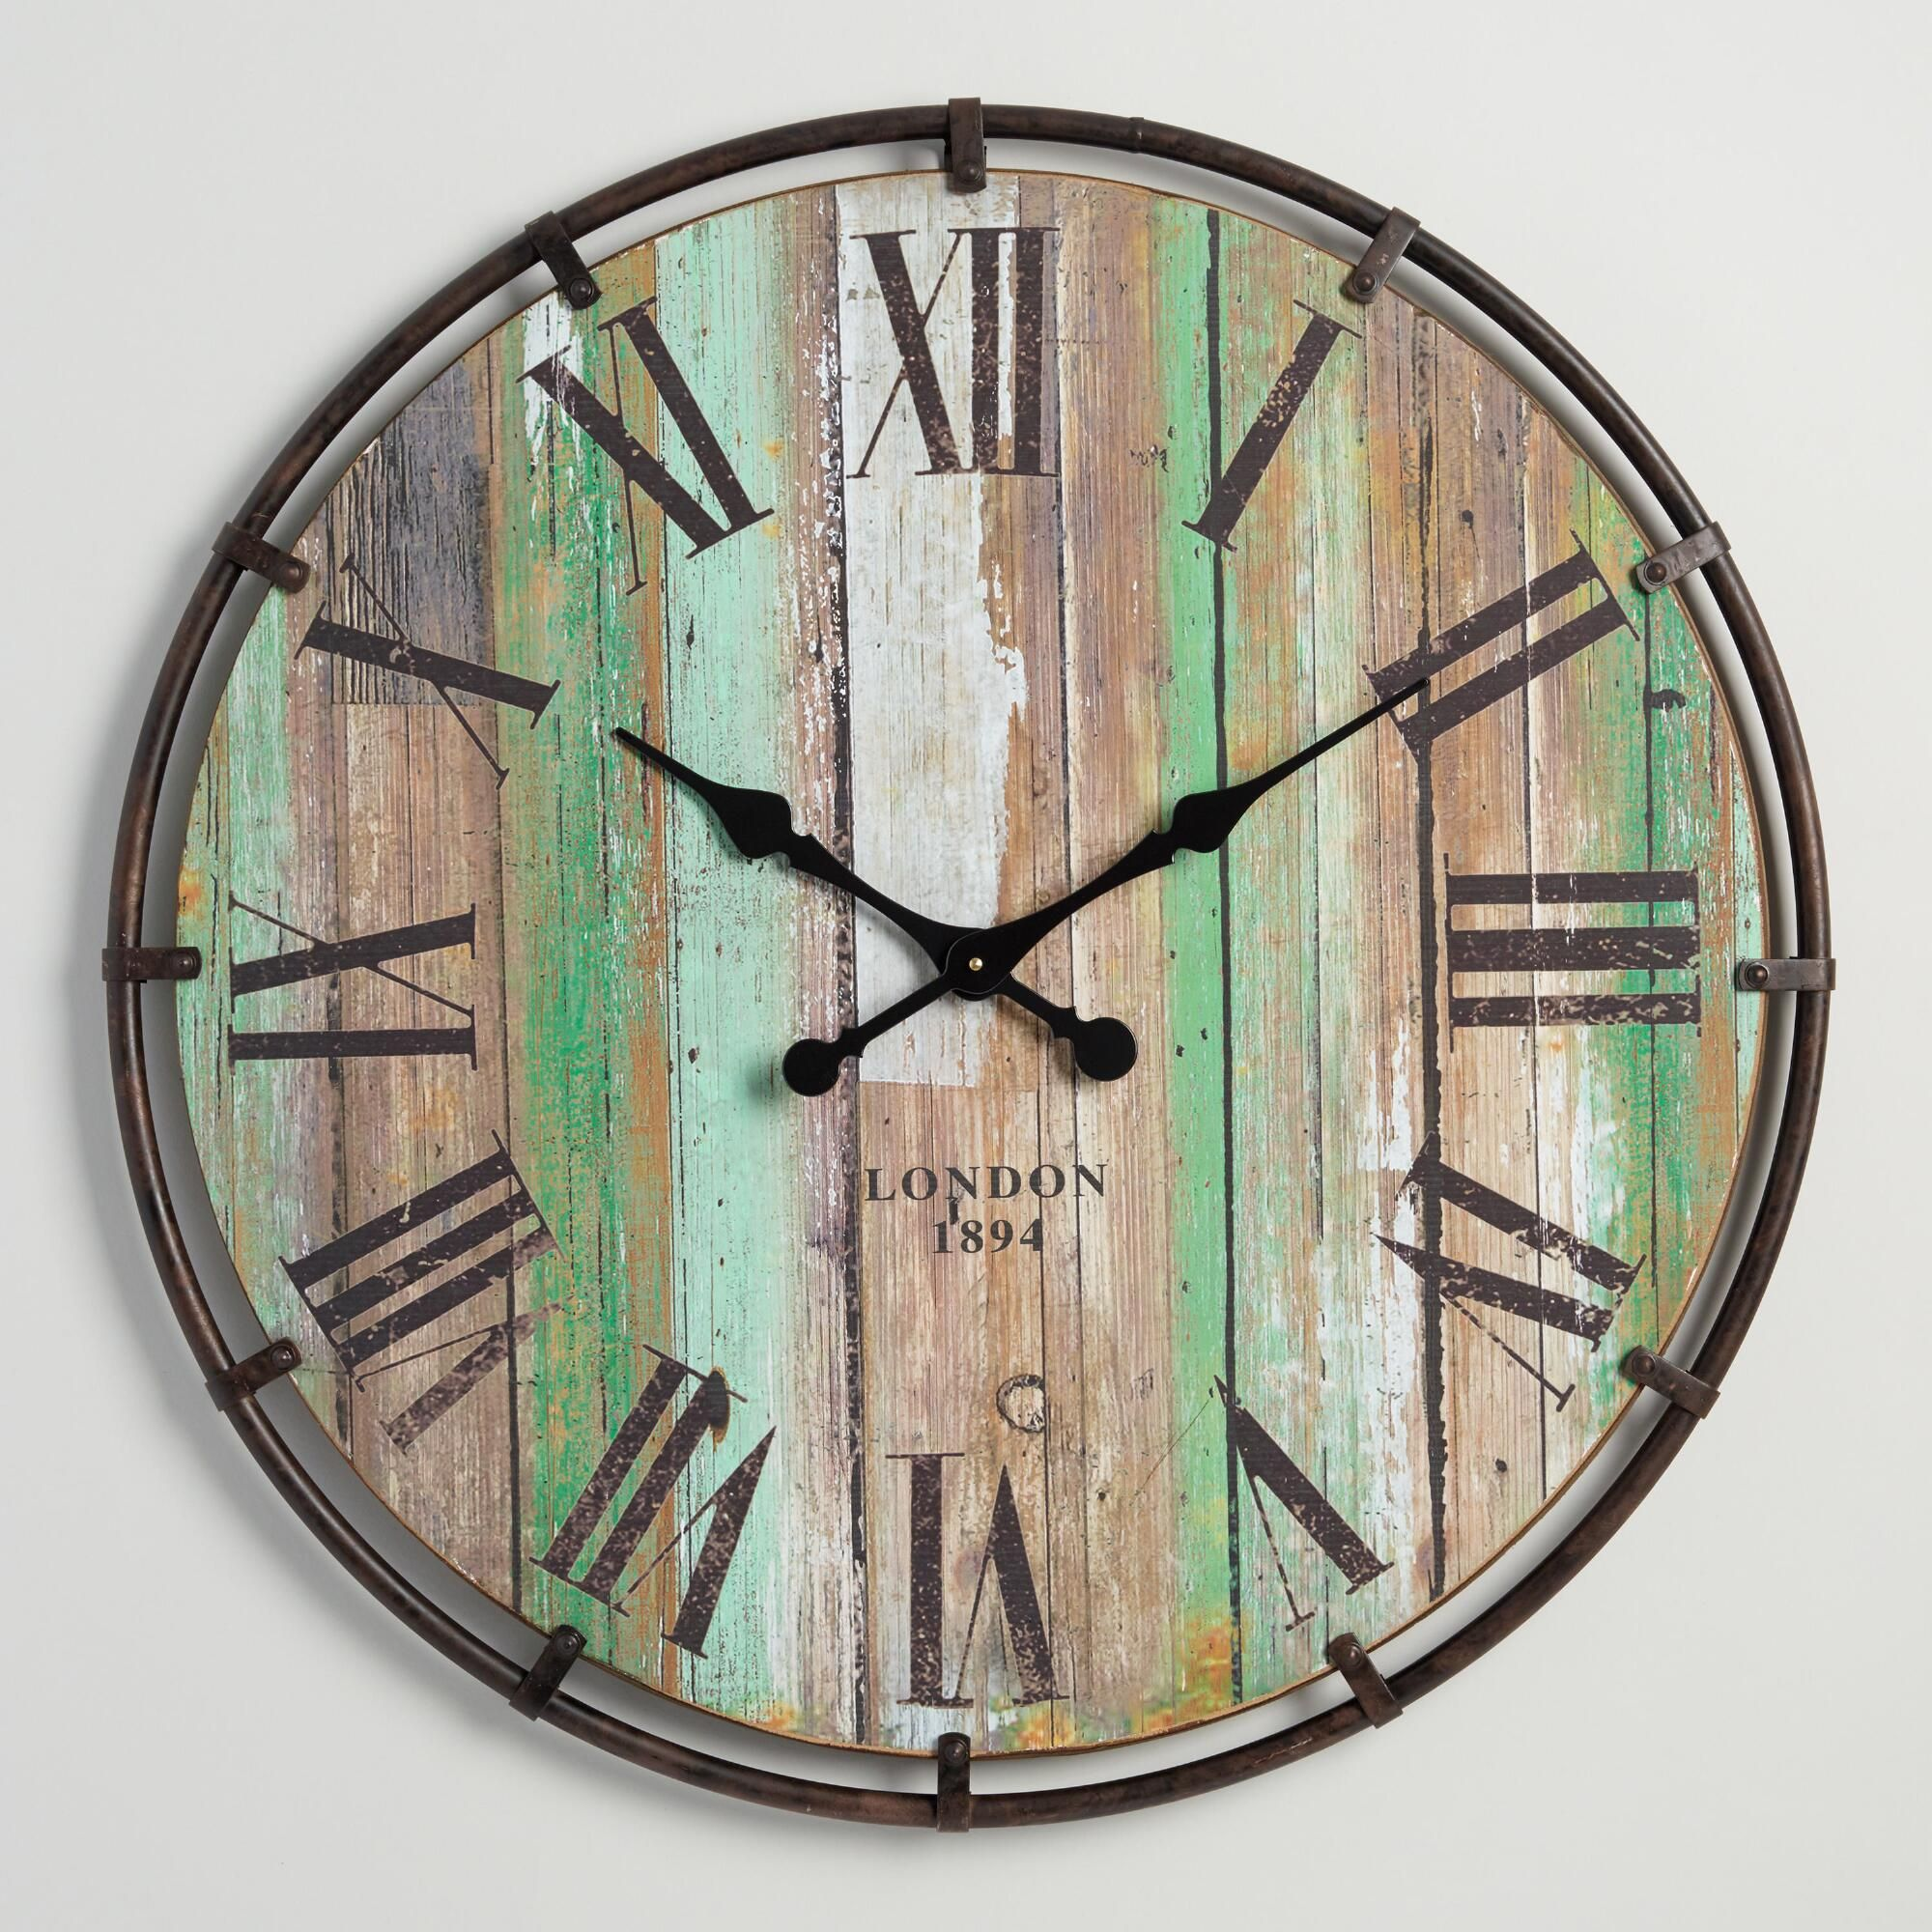 Bring Bold Flair To Your Decor With Our Ample Sized Wall Clock Featuring A